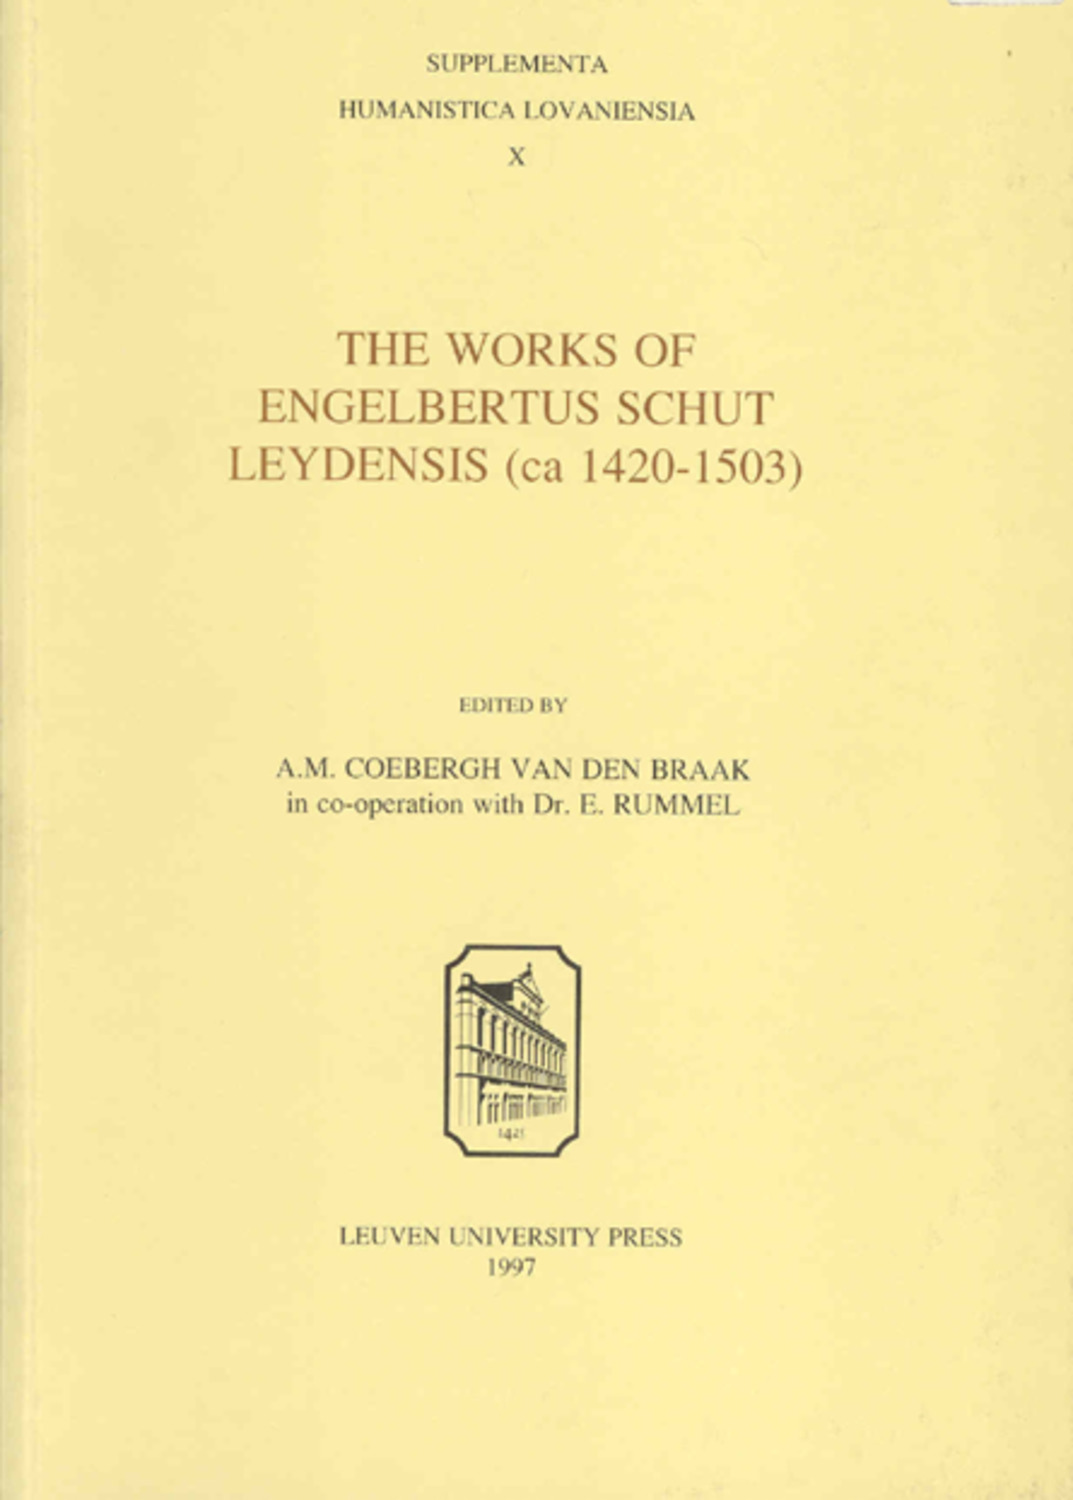 The Works of Engelbertus Schut Leydensis (ca. 1420-1503)